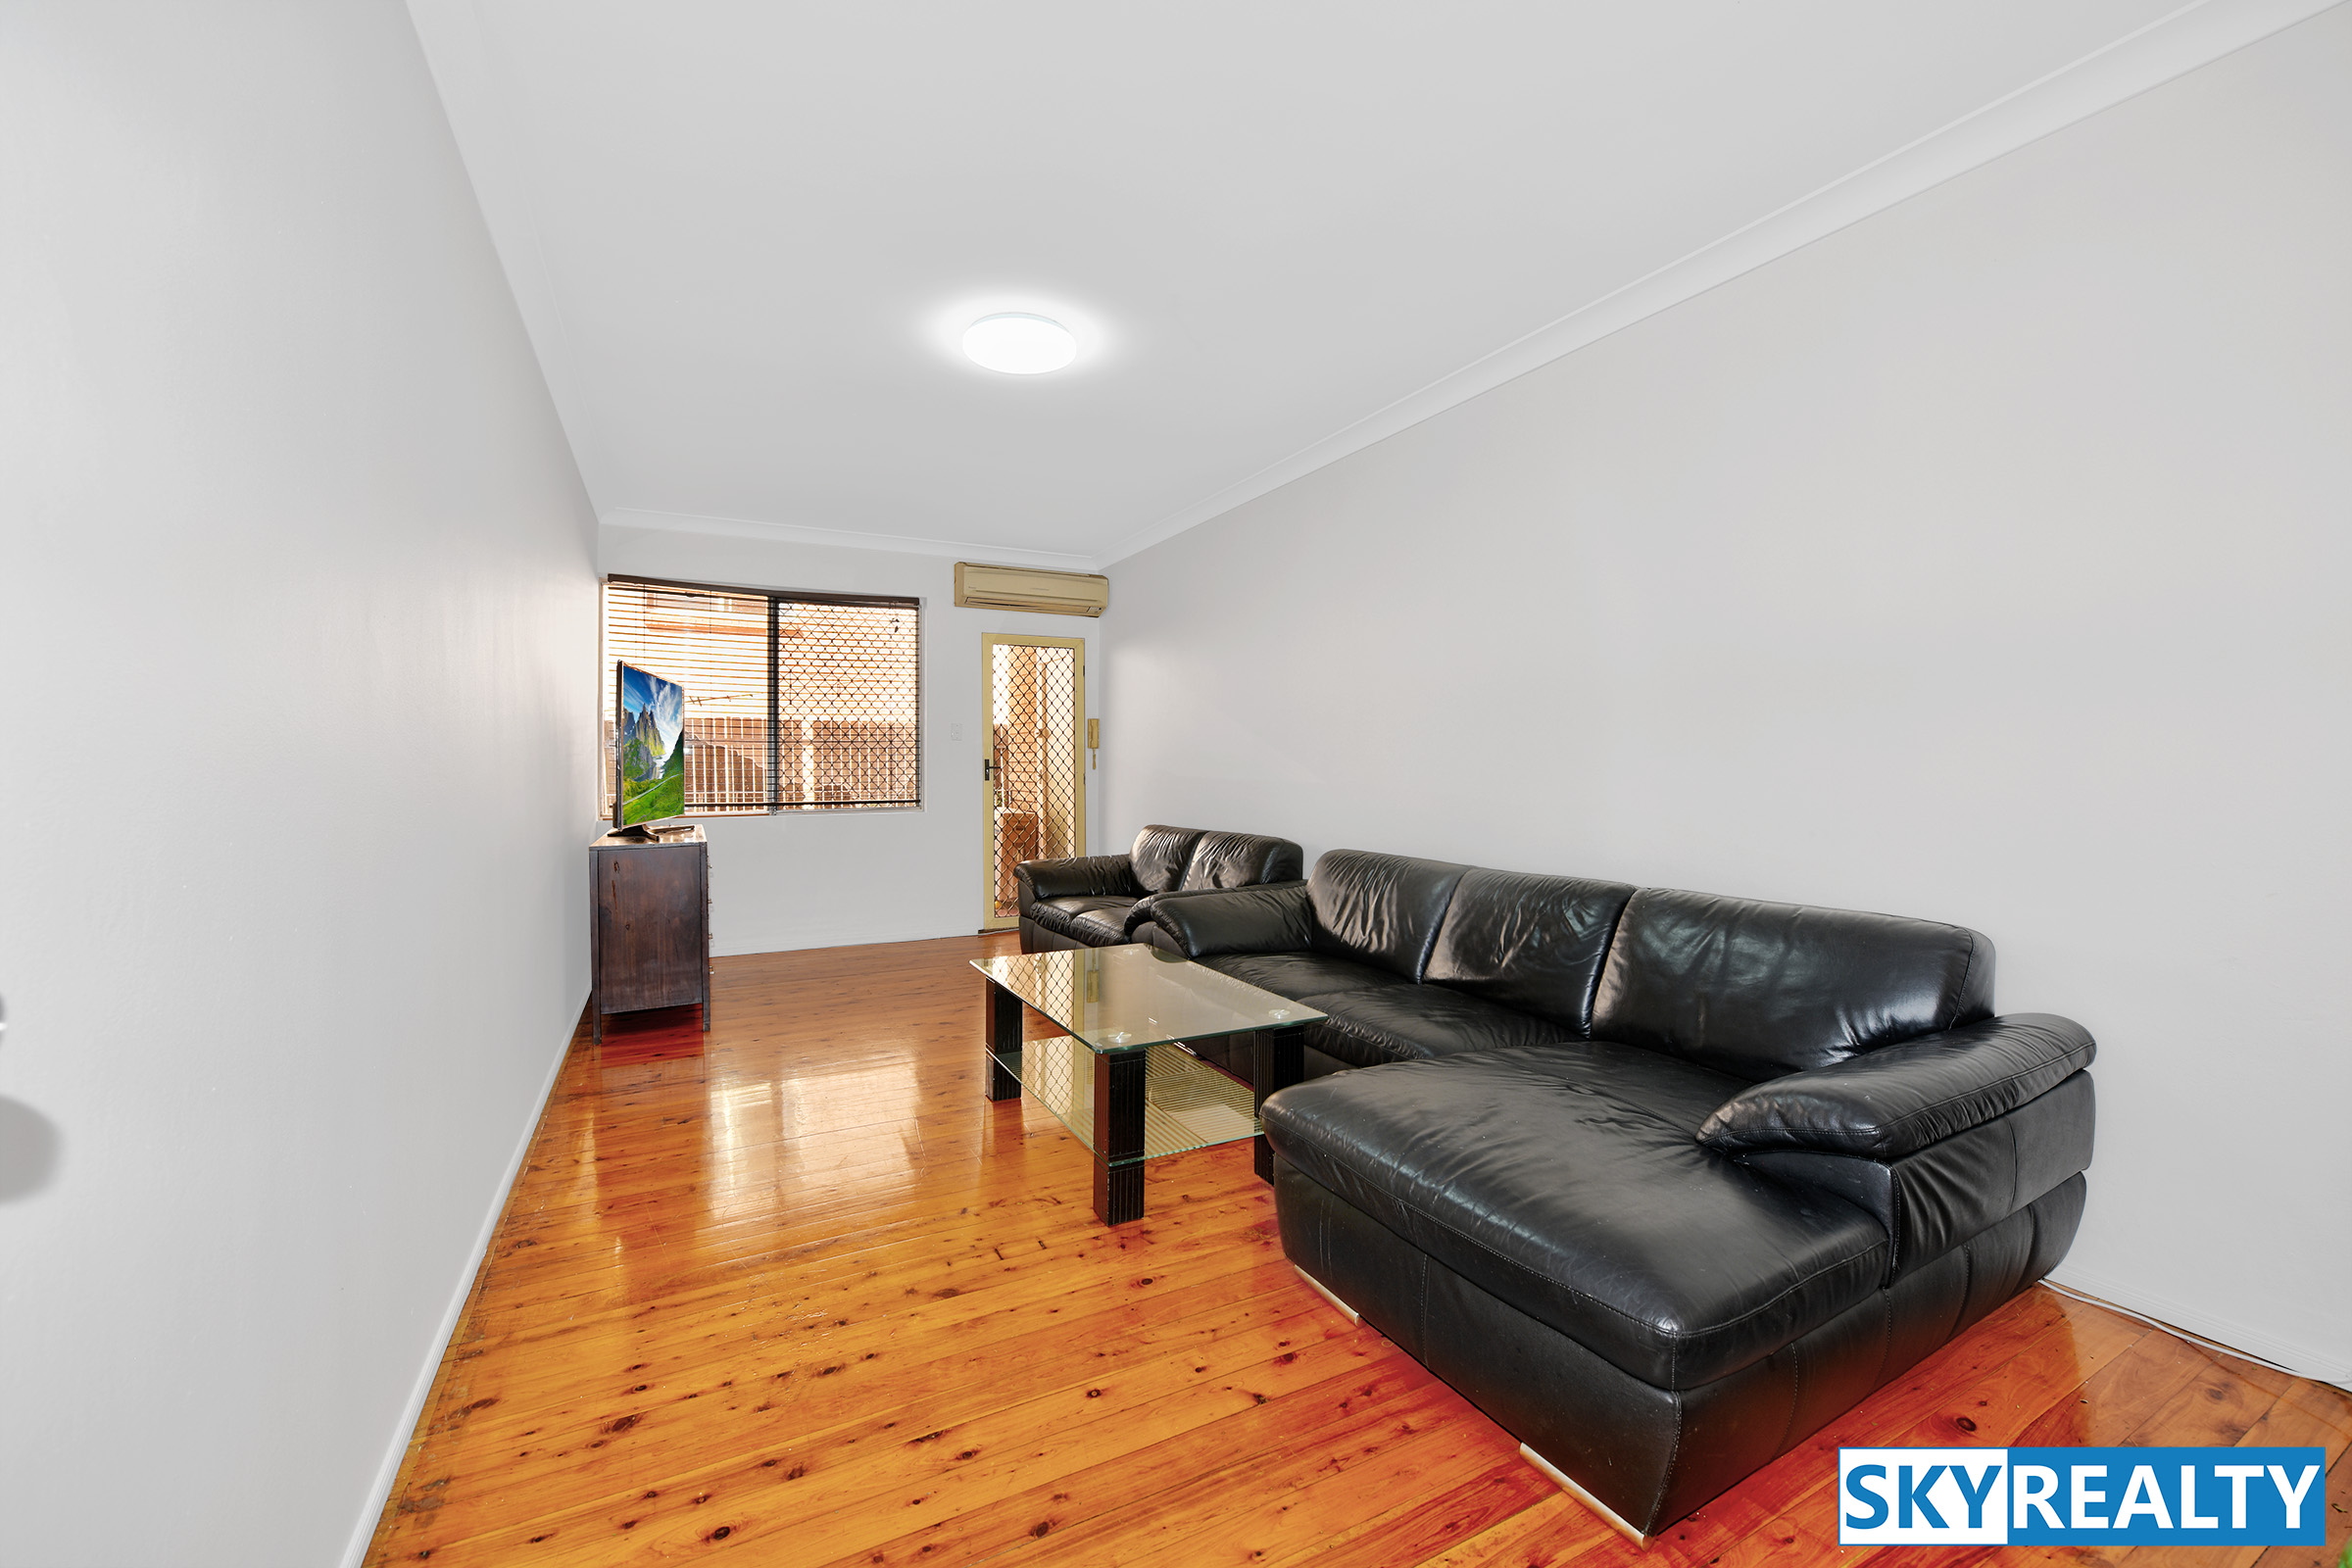 Desirable Home Unit in Excellent Location